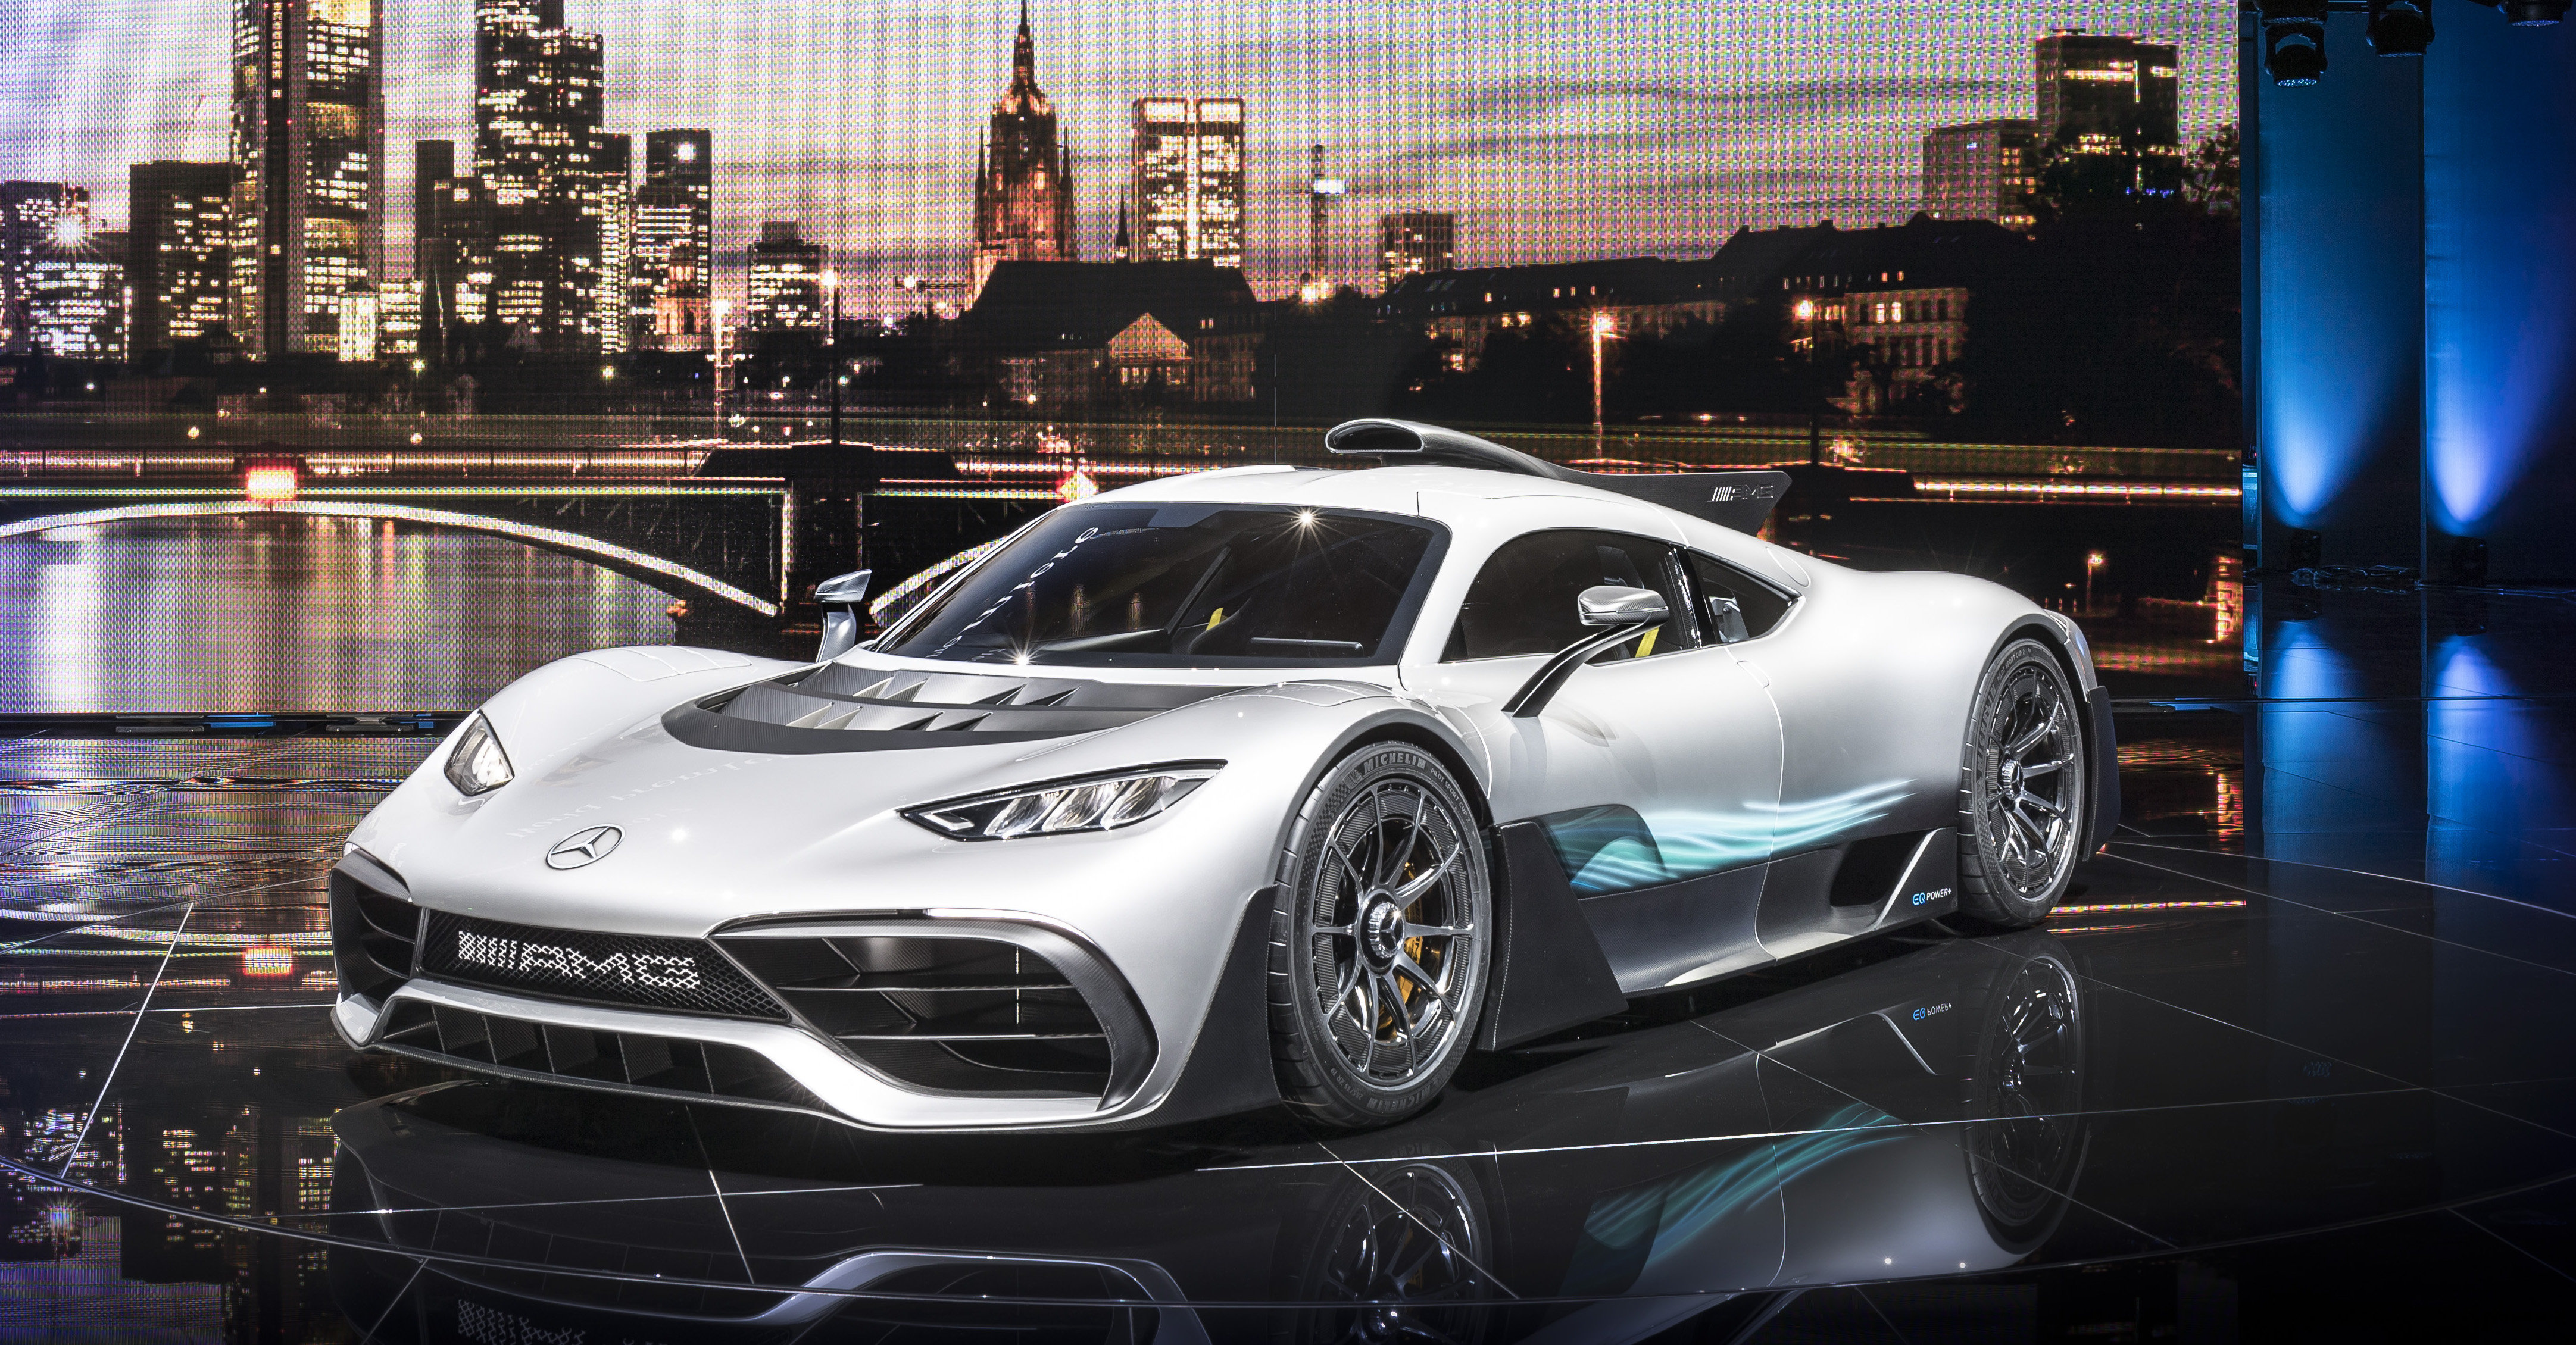 f1 mercedes amg project one 0 200 km h 6 350 km h paul tan. Black Bedroom Furniture Sets. Home Design Ideas